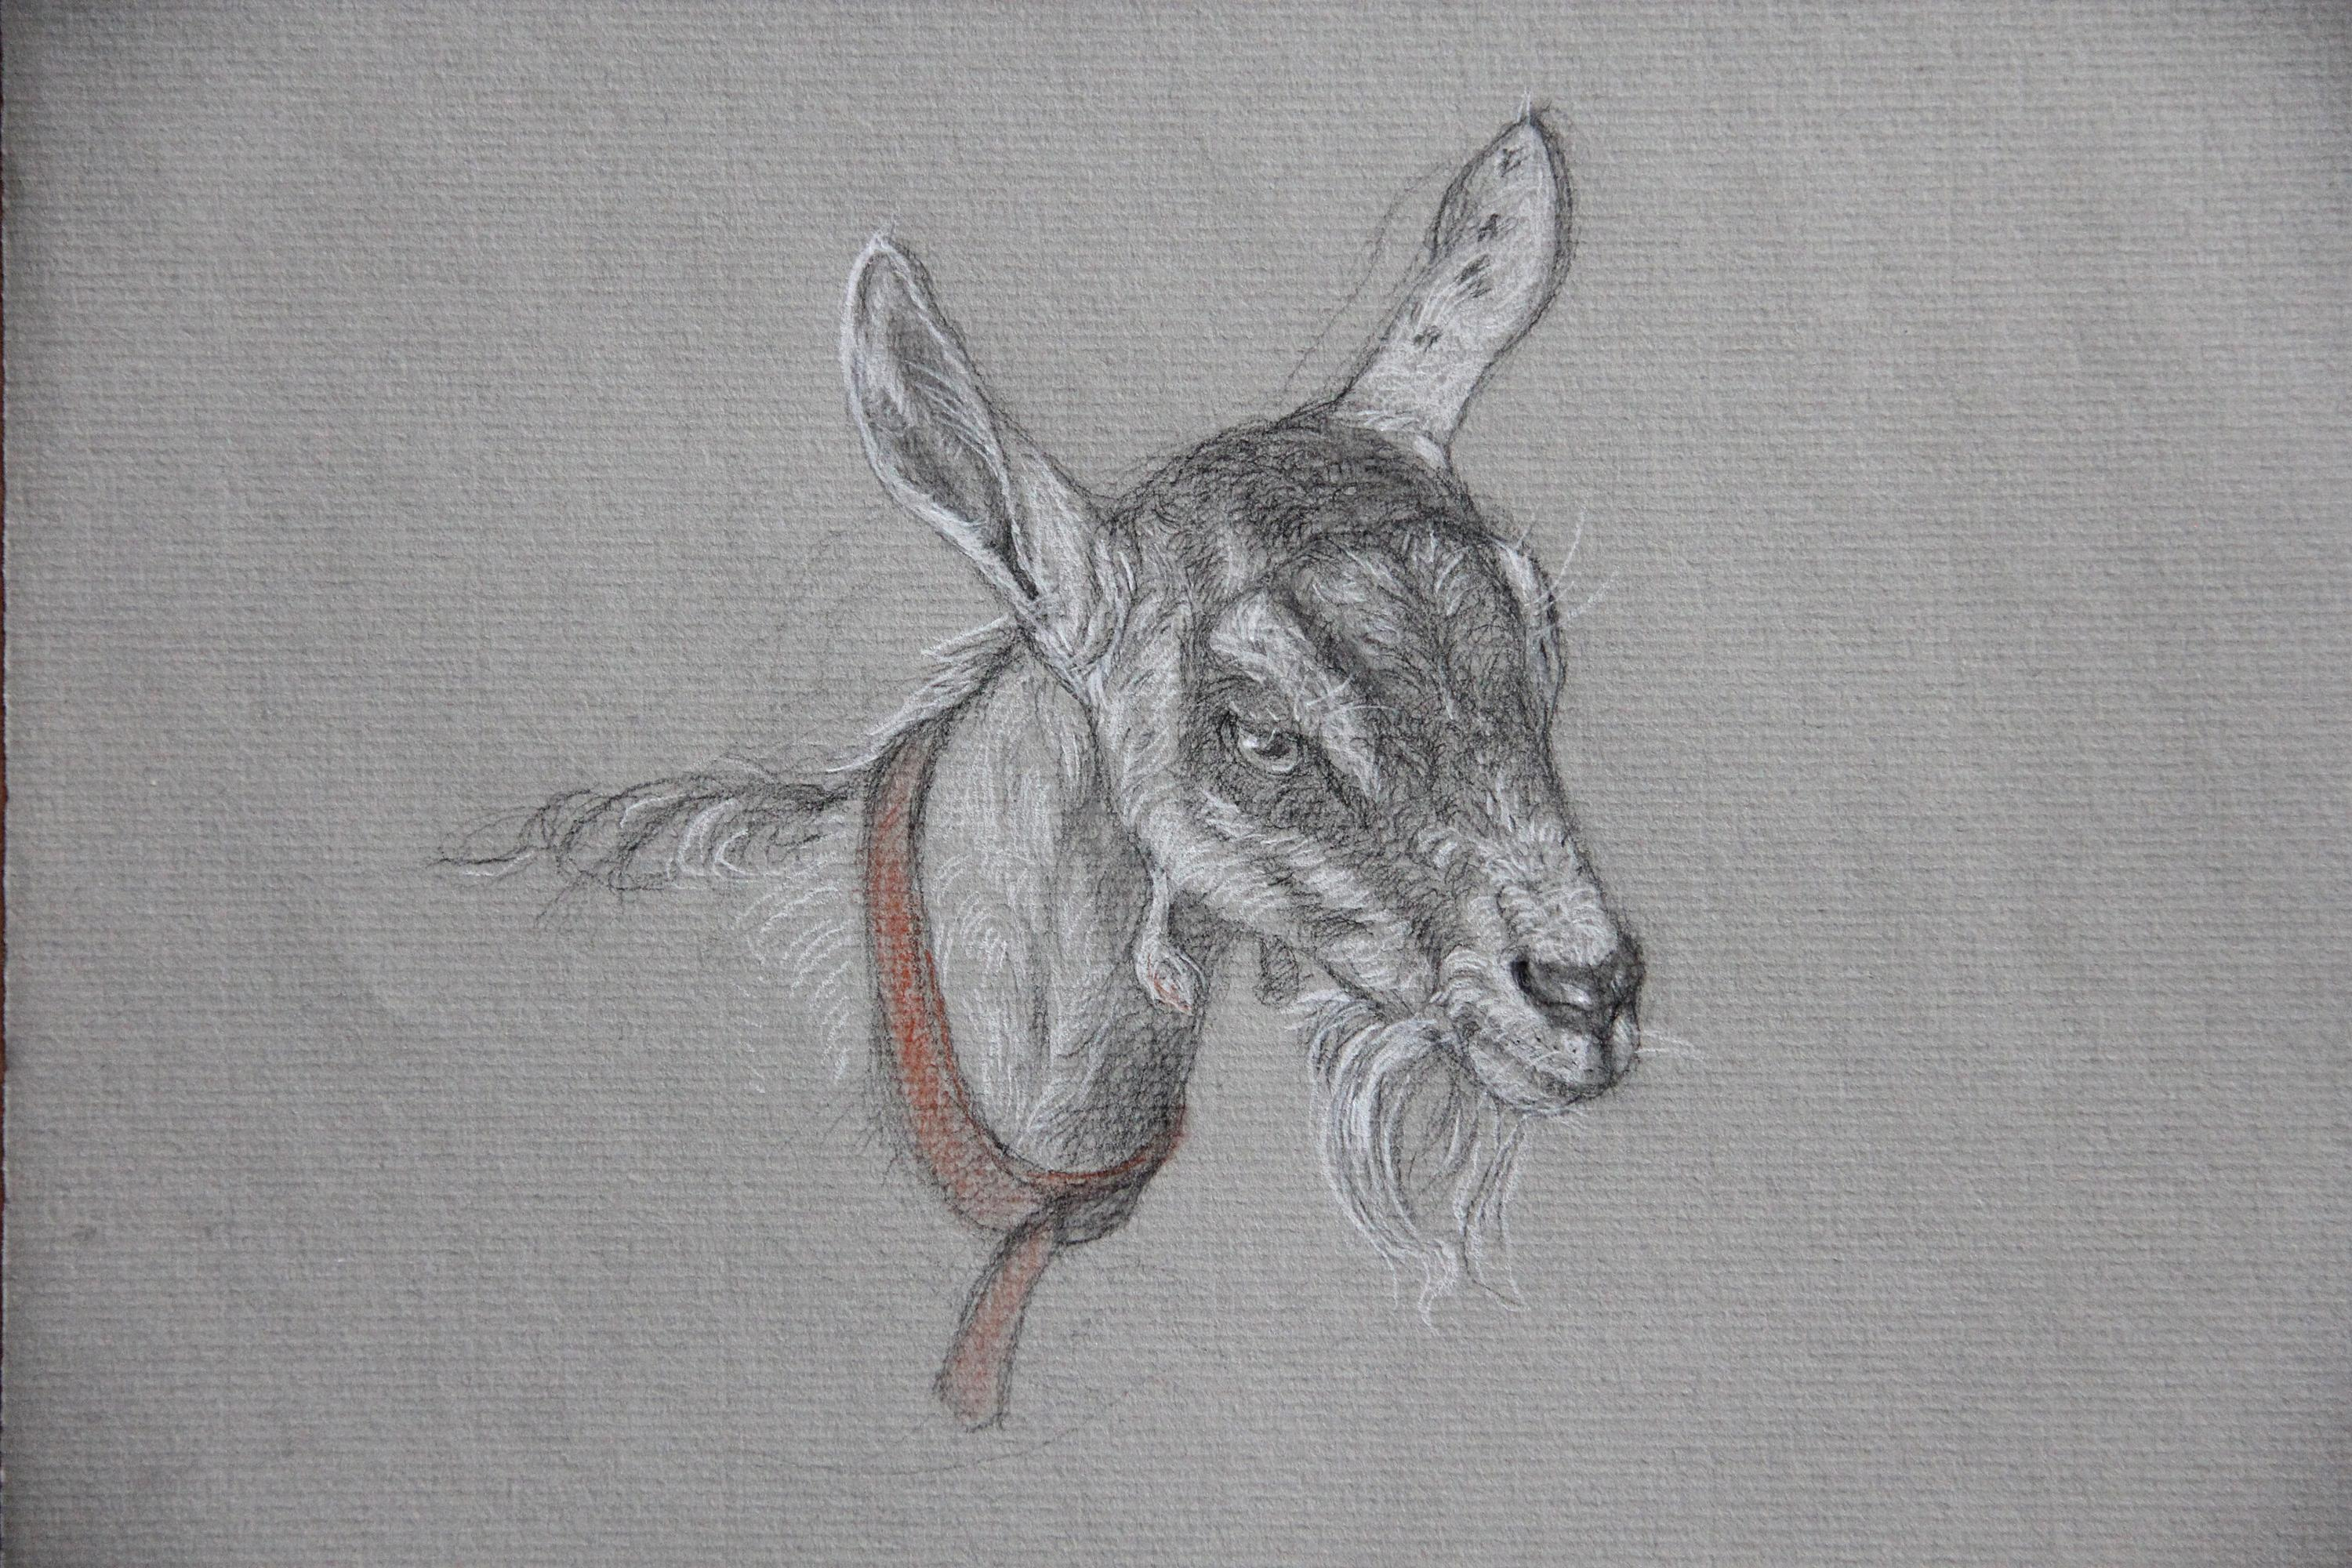 GOAT WITH ORANGE COLOR, animal, portrait, drawing, charcoal, photo-realism